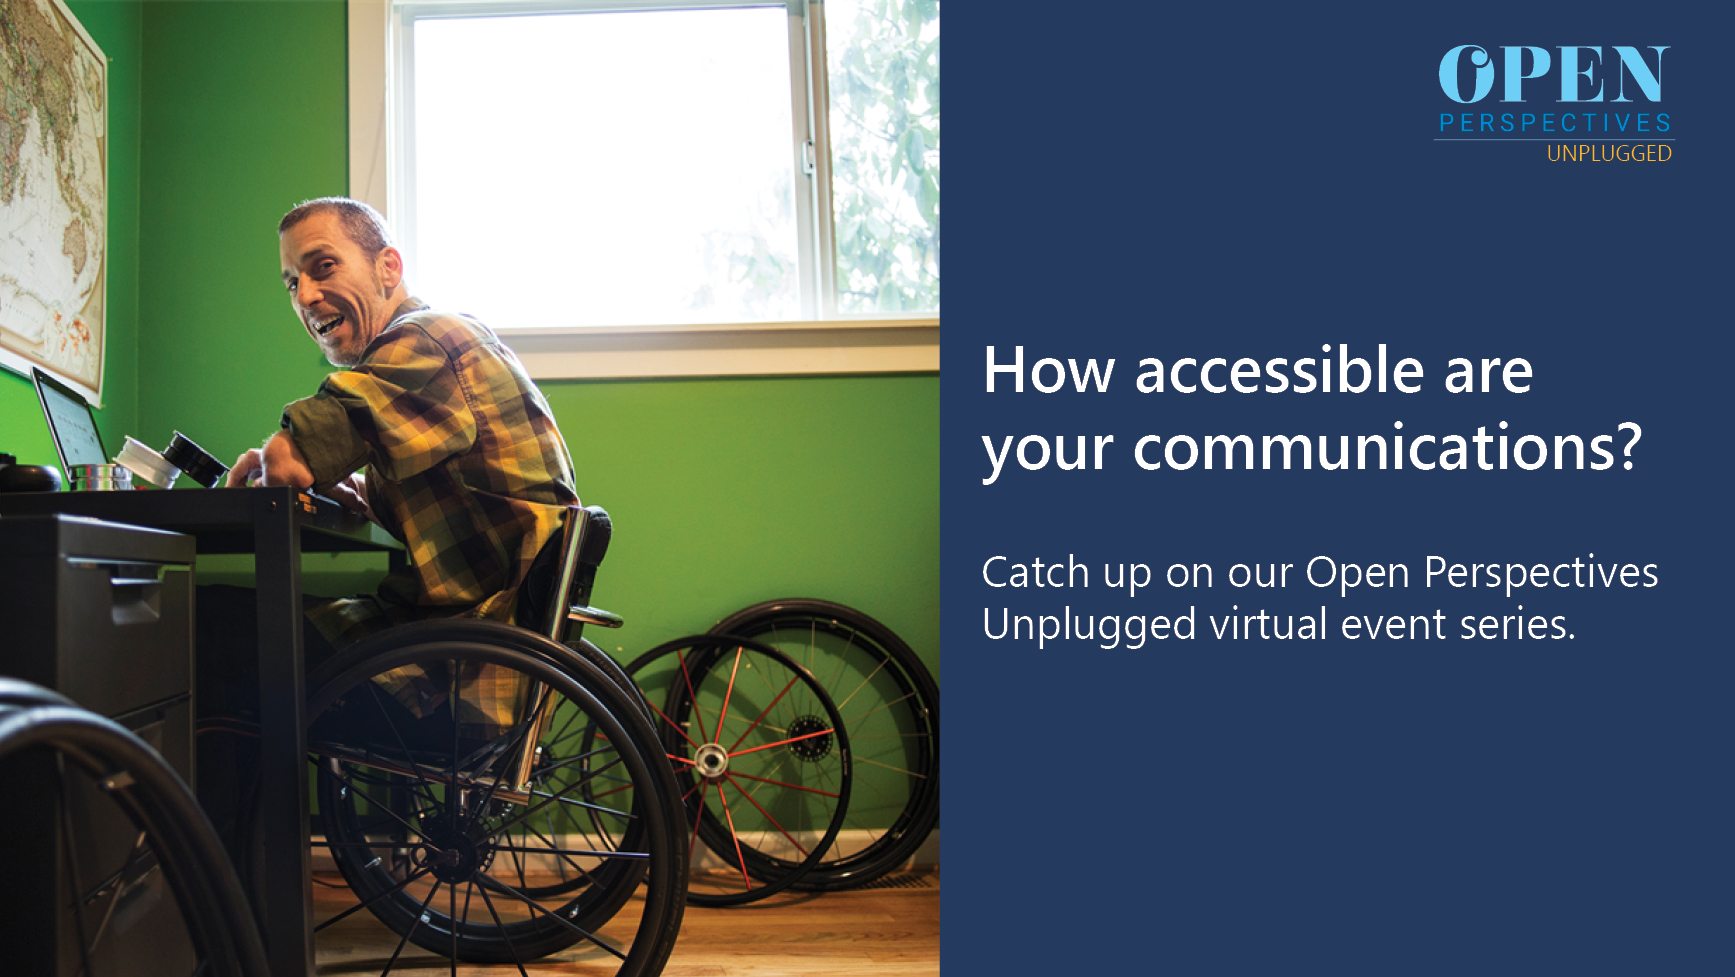 Image of man in a wheelchair including the title 'How accessible are your communications? Catch up on our Open Perspectives Unplugged virtual event series.'